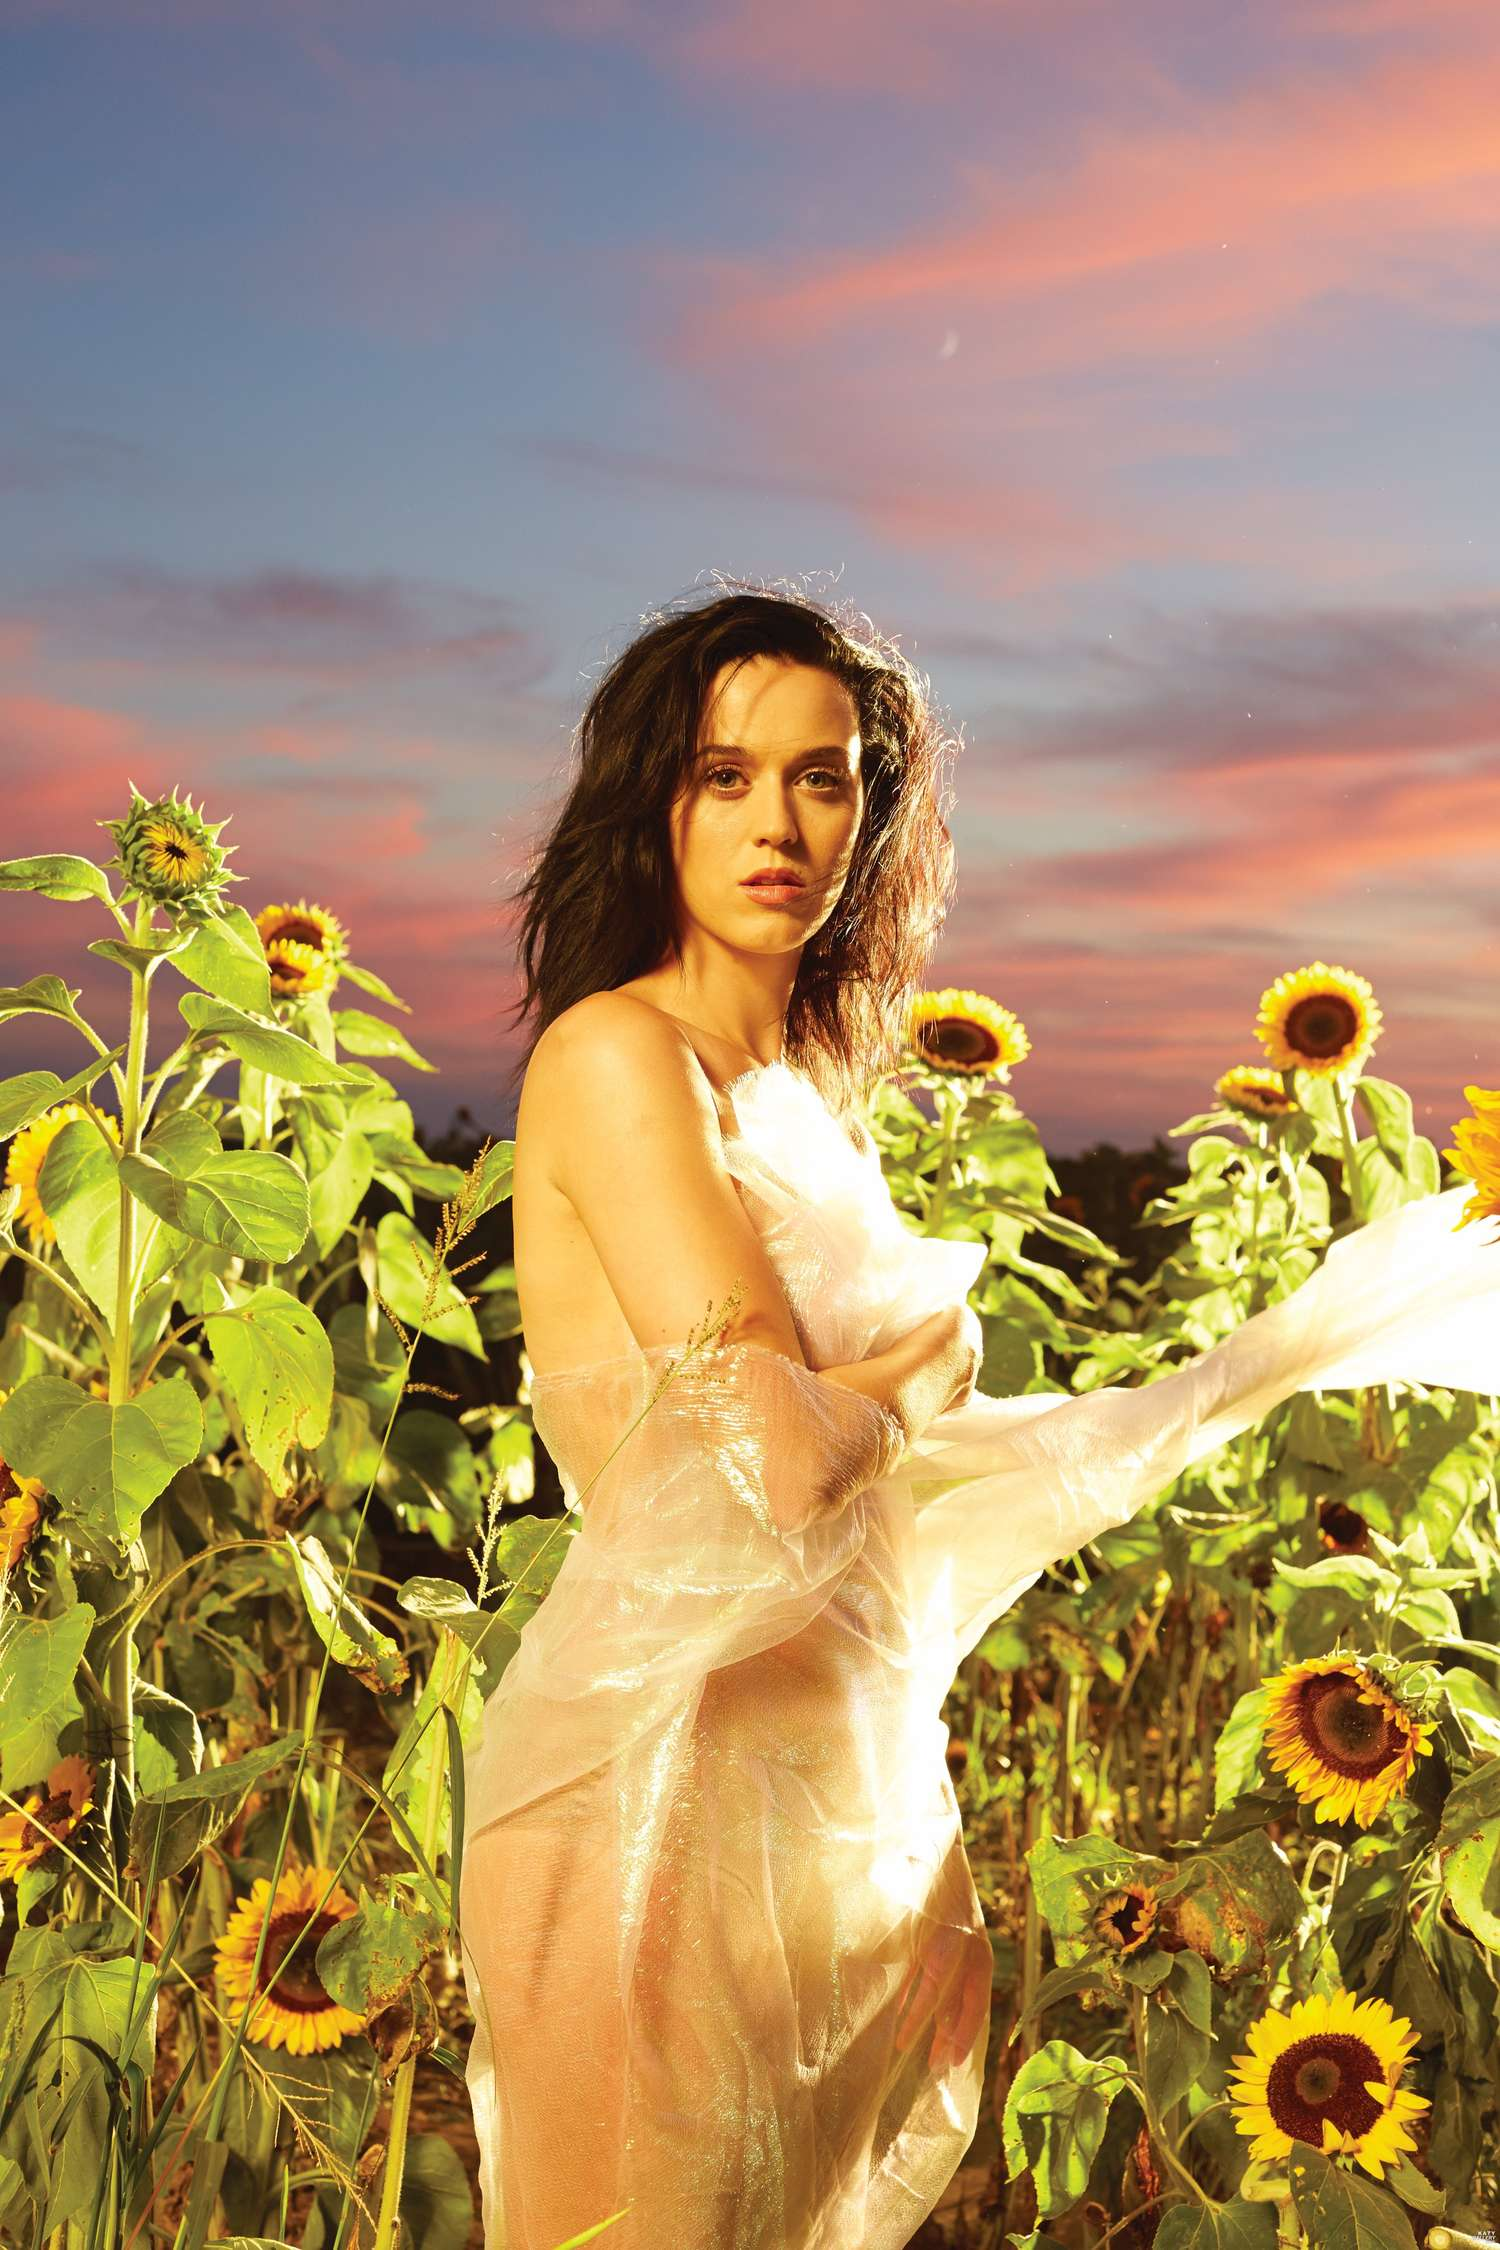 Katy Perry Prism Album Photoshoot Gotceleb